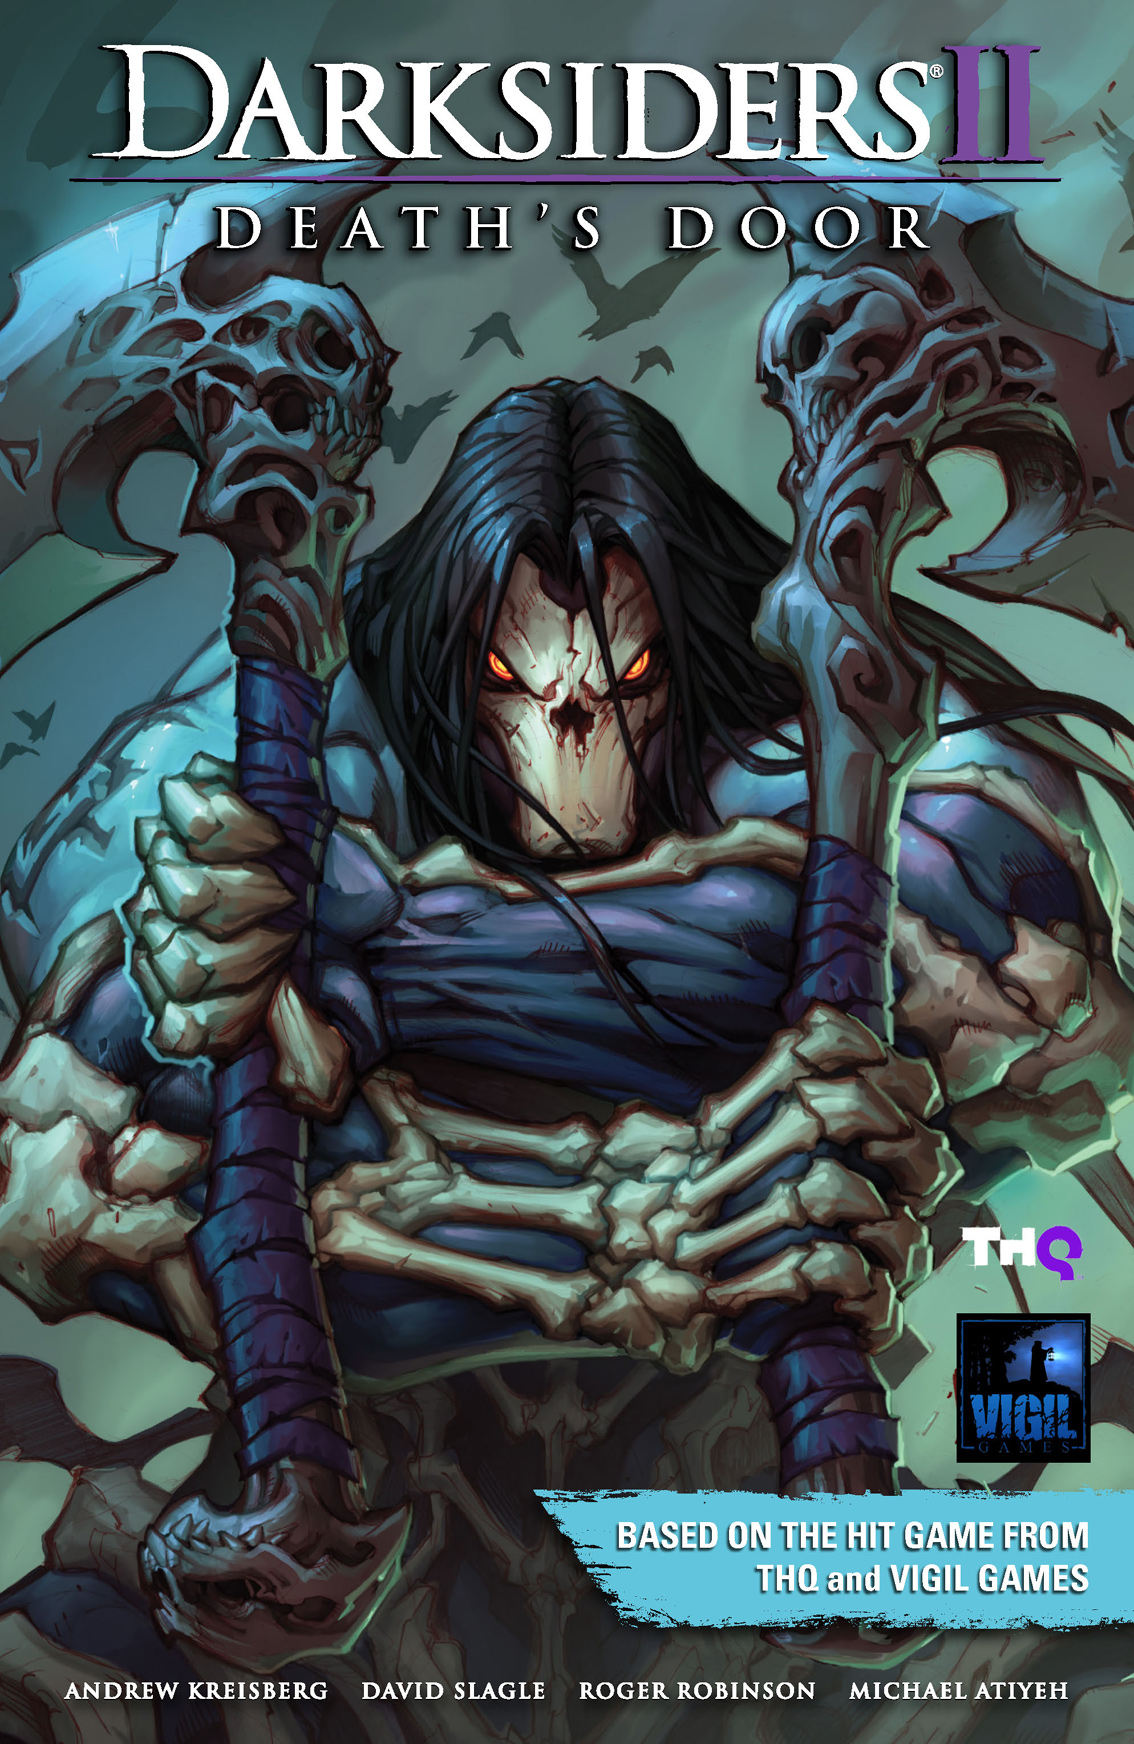 Darksiders II: Deaths Door Volume 1